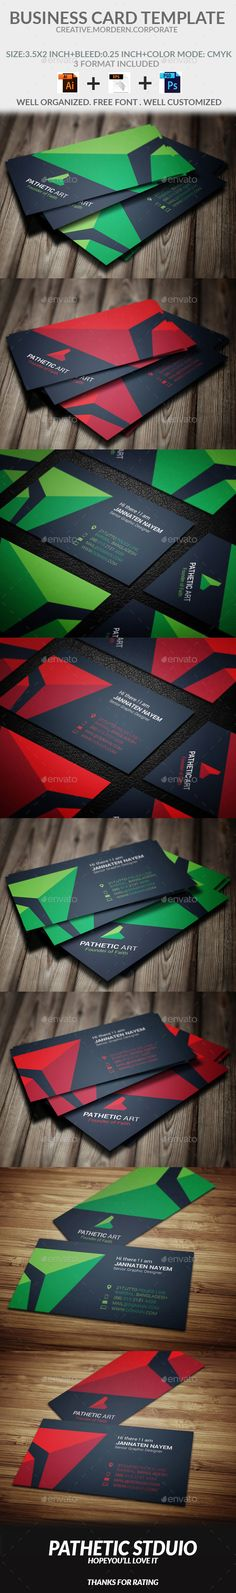 341 best creative business cards images on pinterest business creative business card colourmoves